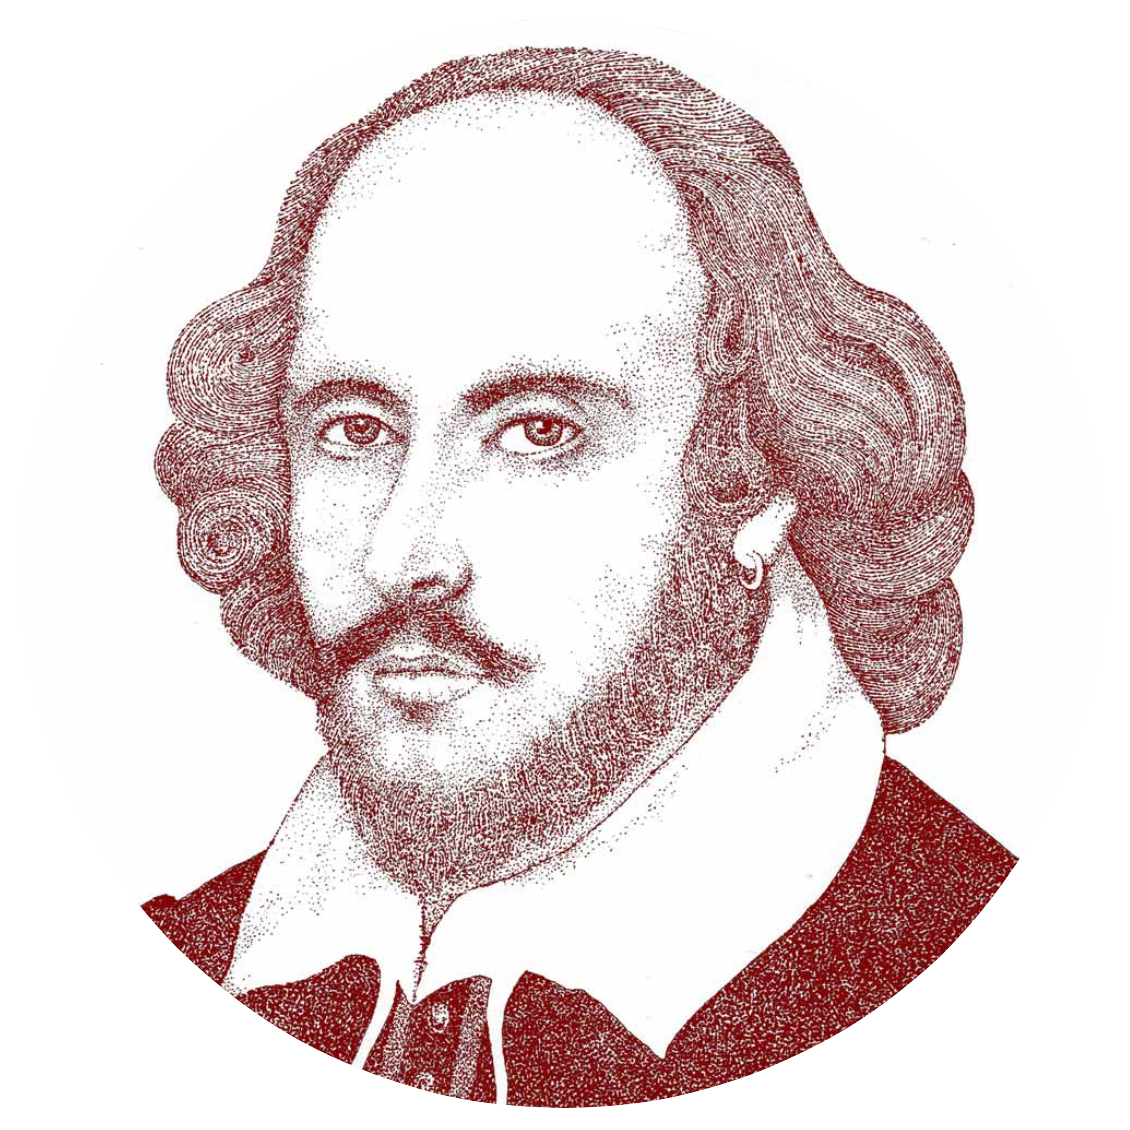 Who is Shakespeare? 3 Cool Fun Facts About William Shakespeare